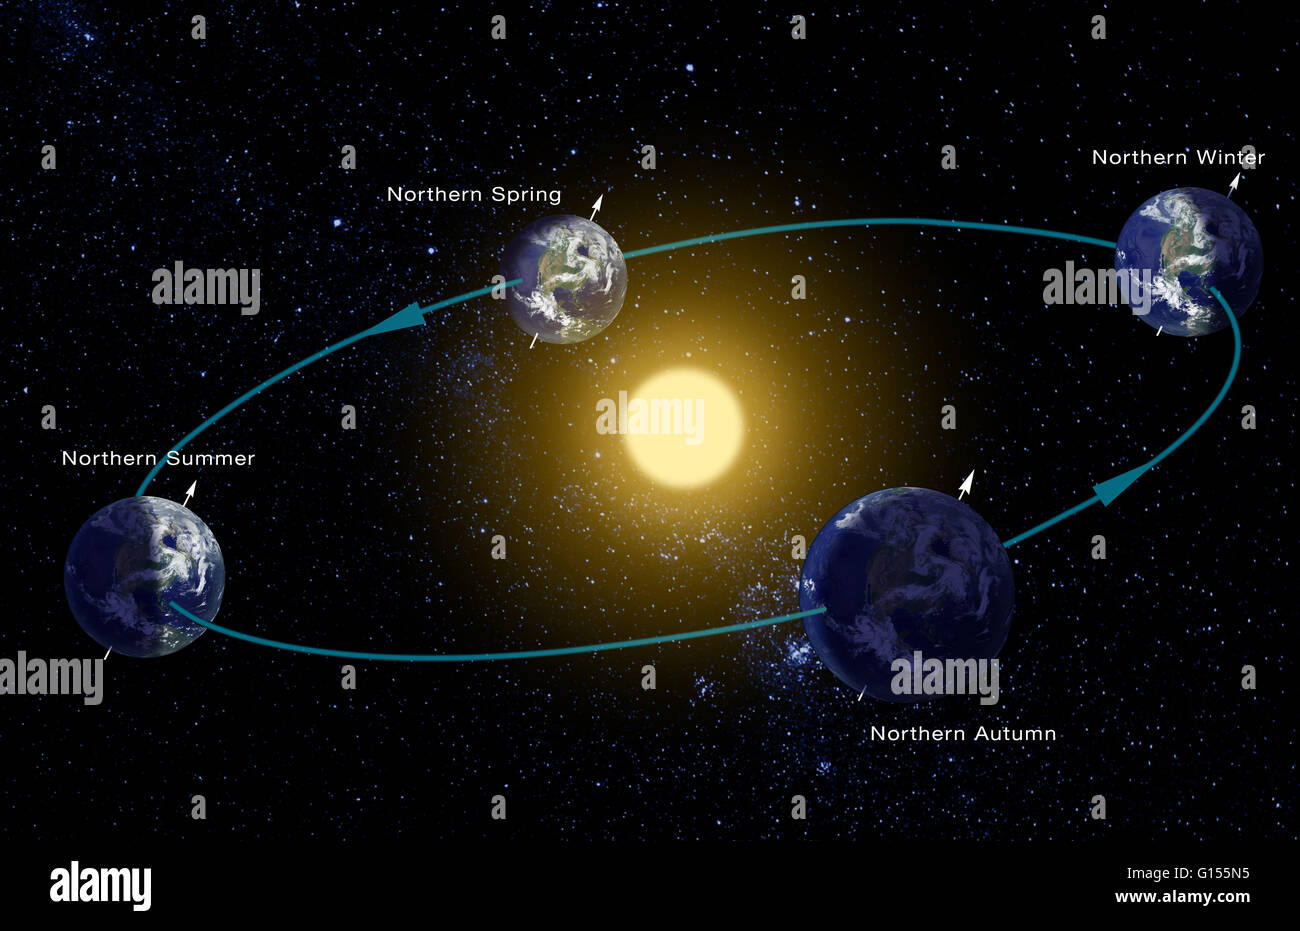 hight resolution of computer diagram of the earth s orbit around the sun showing how the planet s tilted axis gives rise to the seasons each hemisphere experiences winter